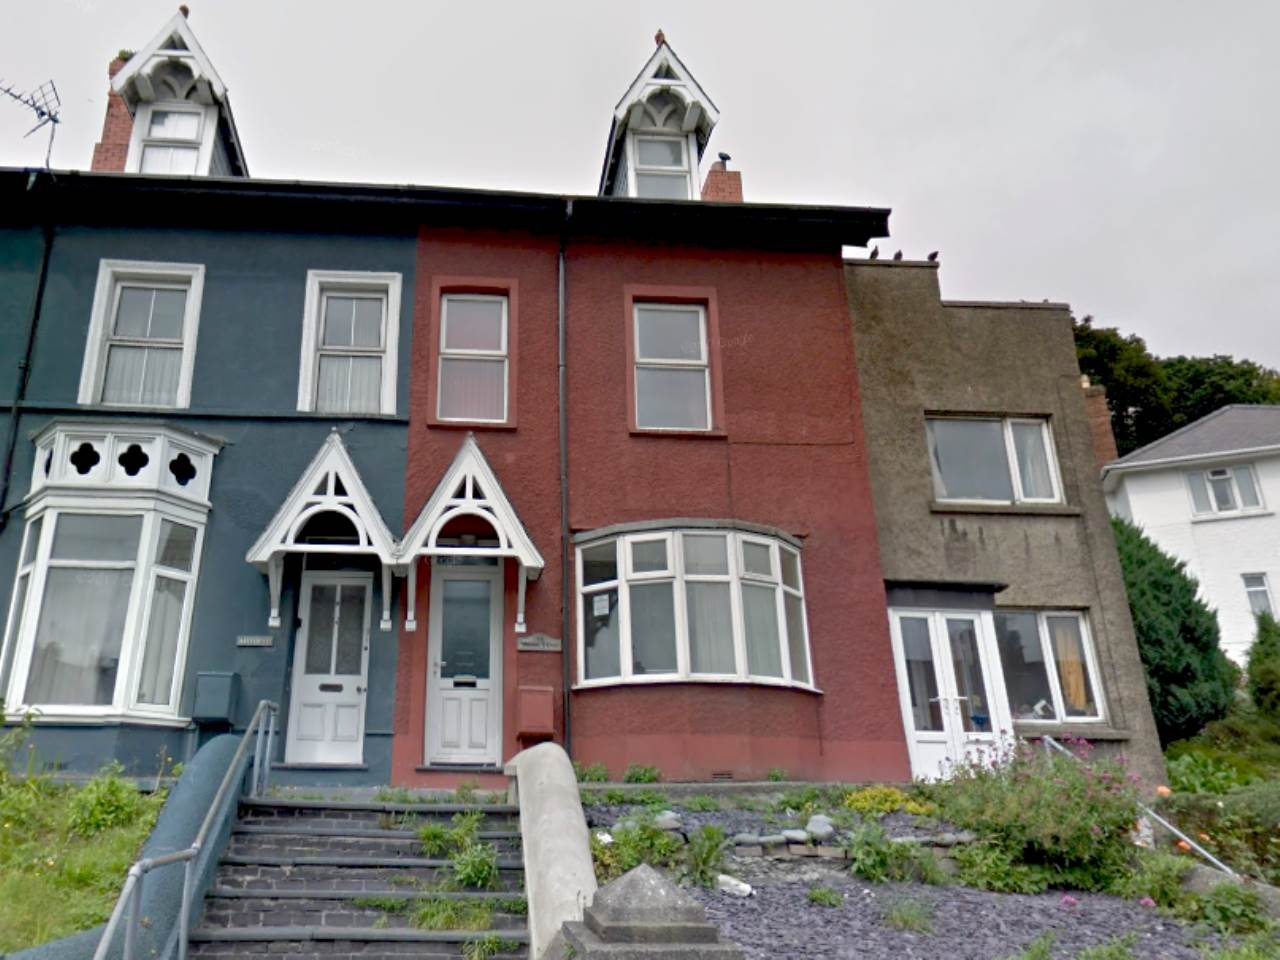 6 bed house to rent in Aberystwyth, Ceredigion  - Property Image 1